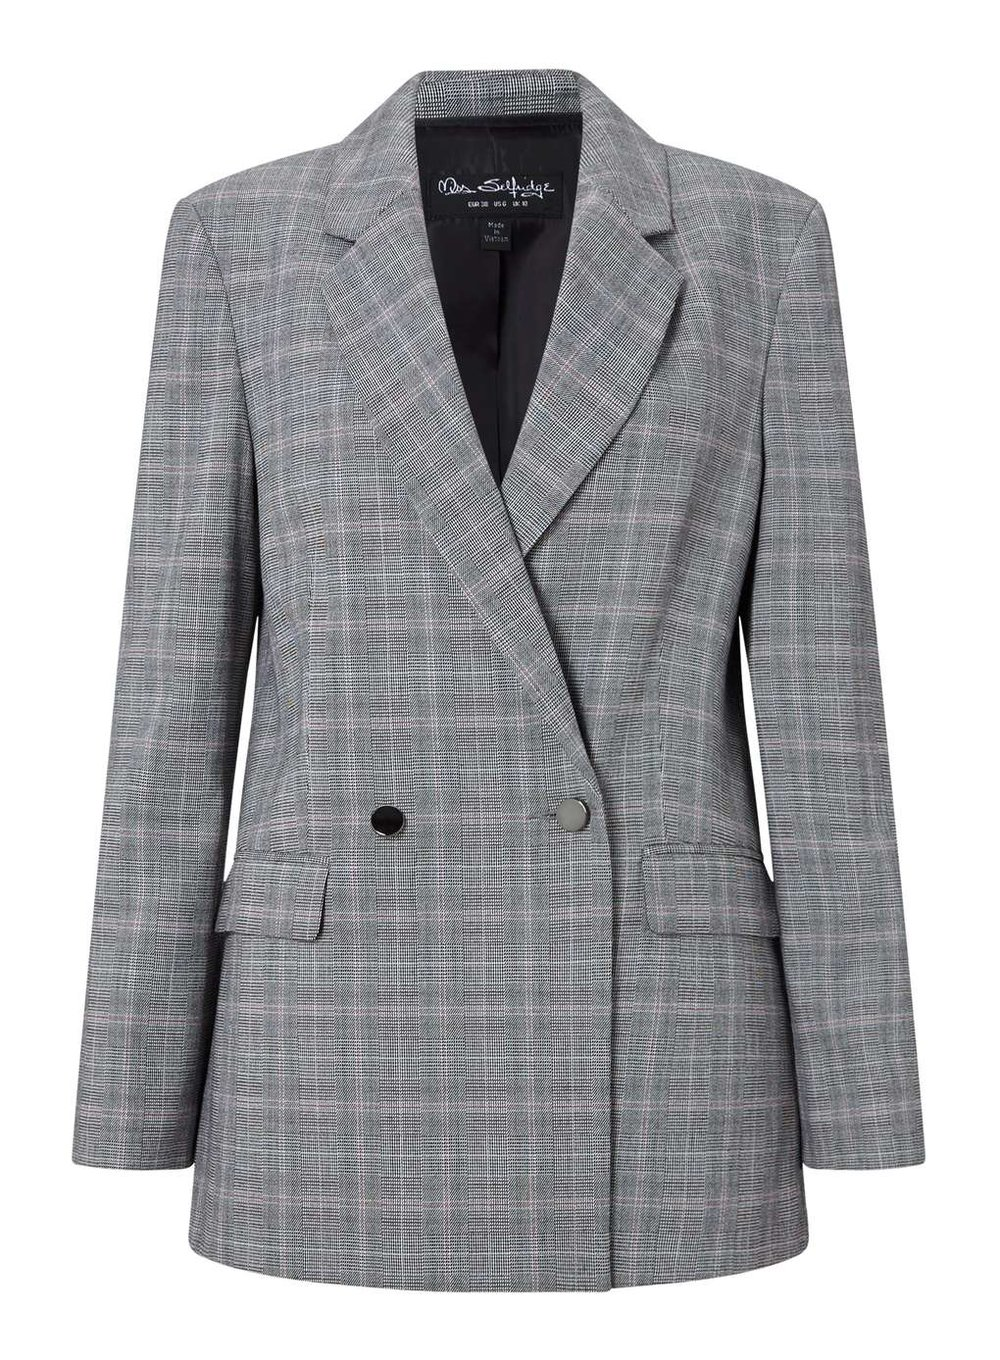 Blazer, £45, Miss Selfridge